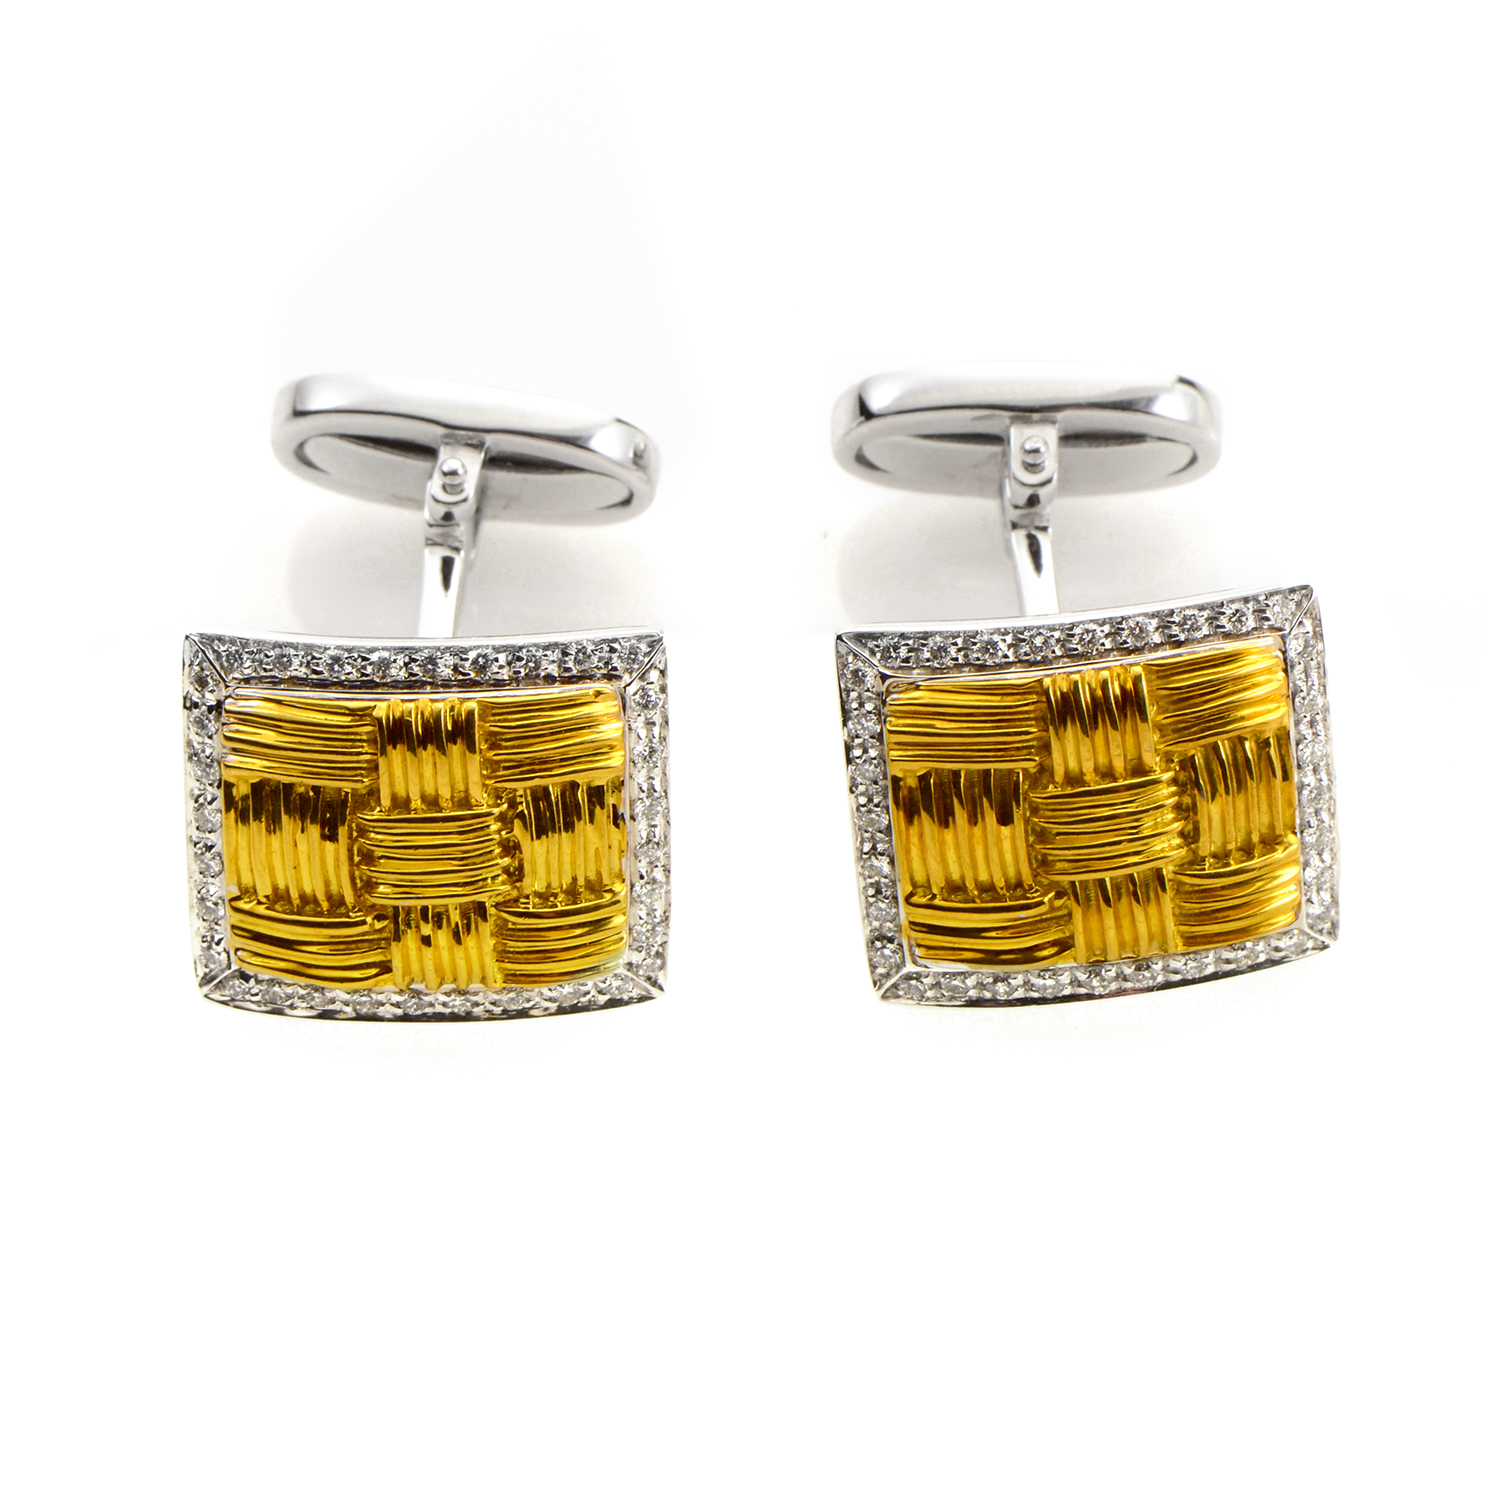 Magnifica Men's 18K Multi-Tone Gold Diamond & Mother of Pearl Cufflinks